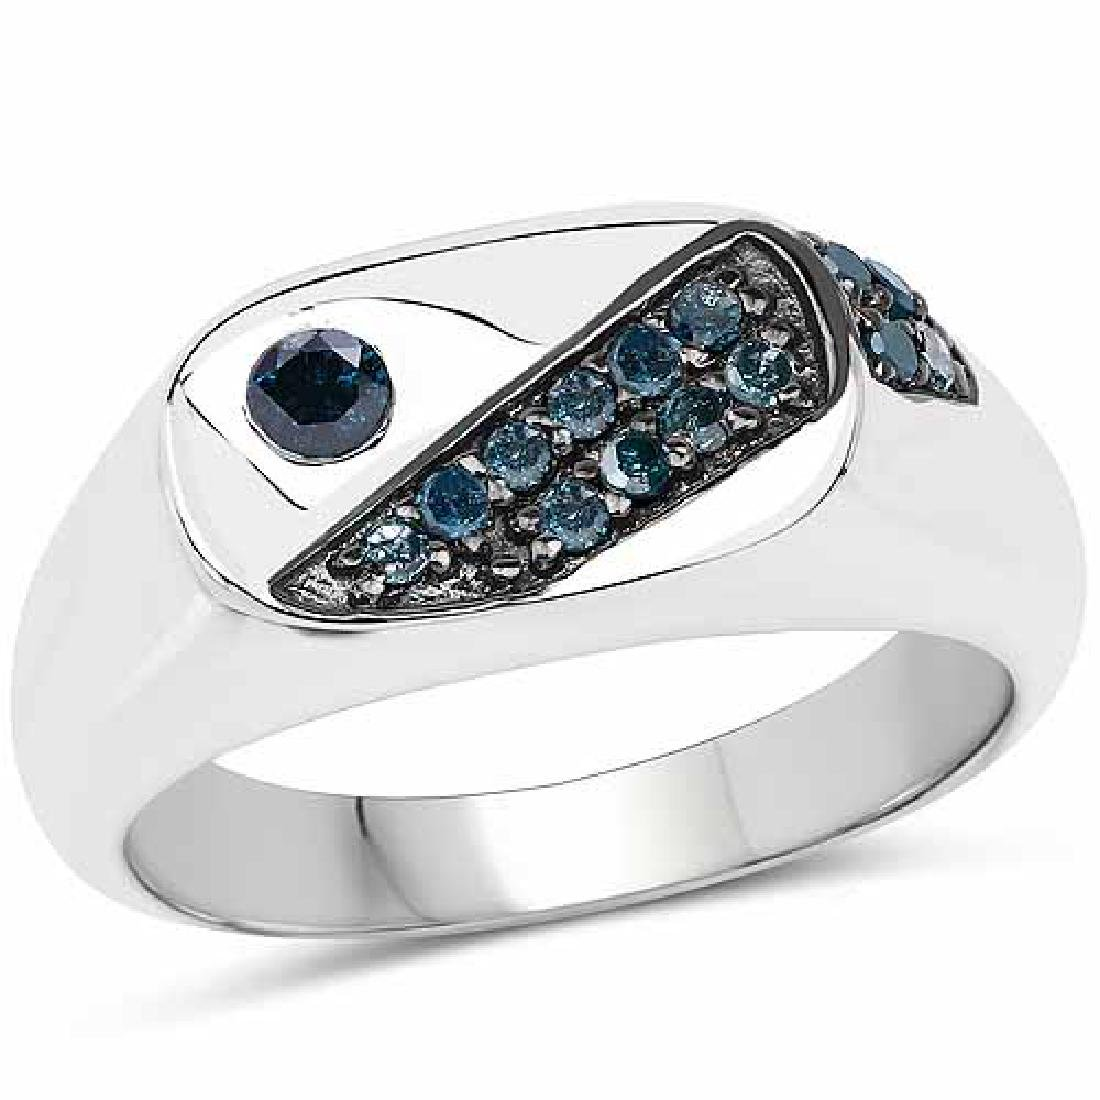 0.31 Carat Genuine Blue Diamond .925 Sterling Silver Ri